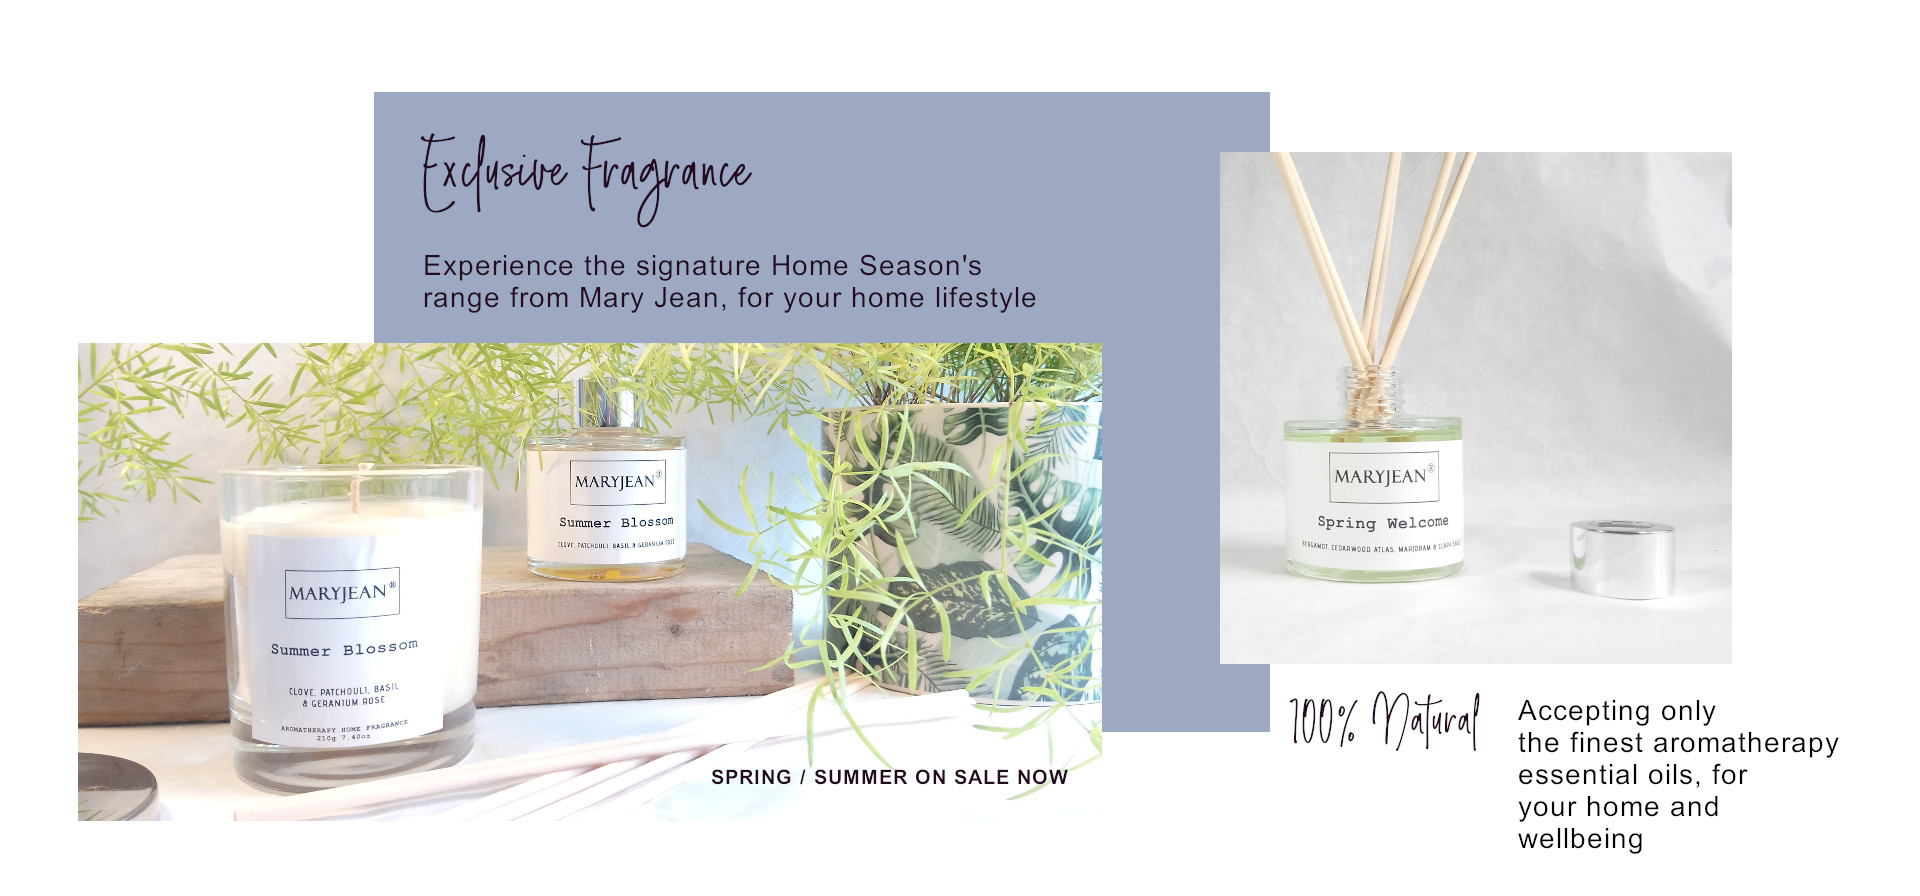 The Mary Jean Autumn 2020 Event Mega Savings on Signature Home Seasons Home Fragrance Candles and Reed Diffusers